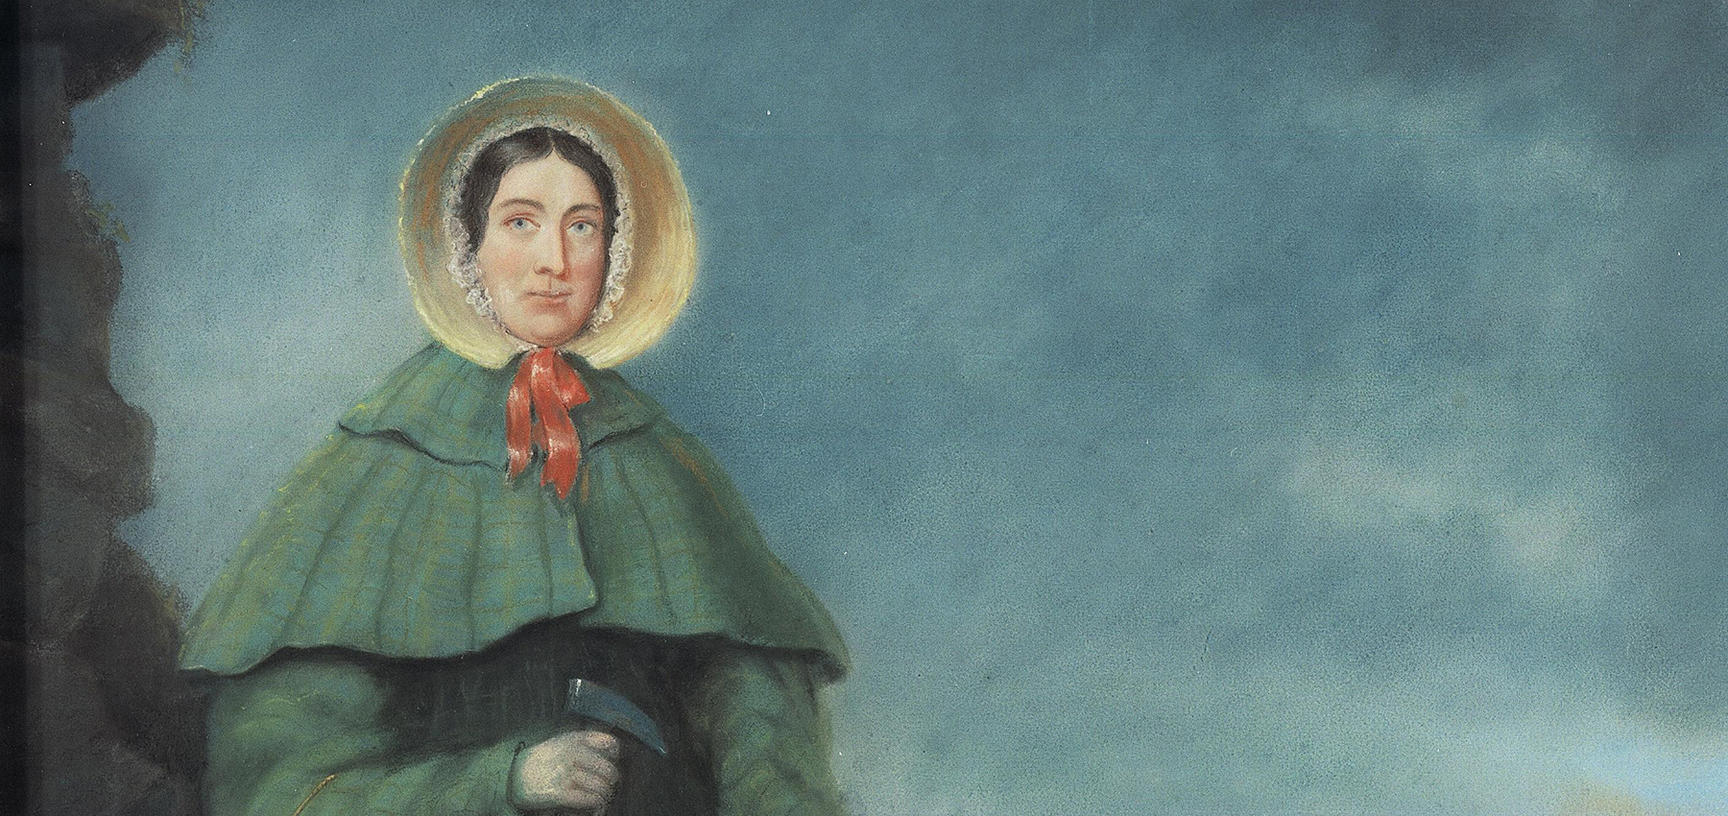 Pastel portrait of Mary Anning by Benjamin John Merifield Donne, 1850. <br><i> ©The Geological Society of London.</i>